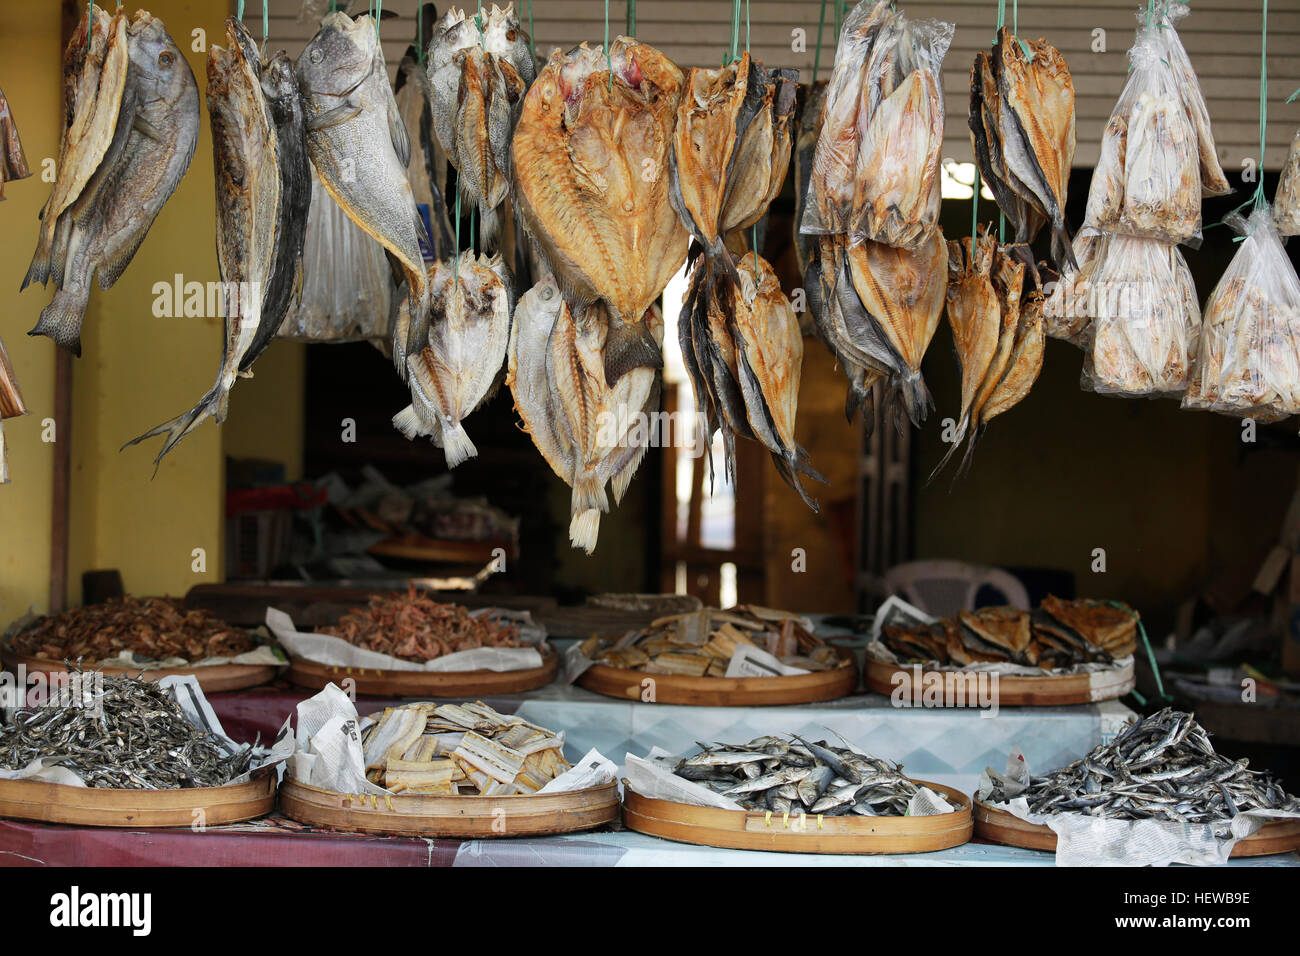 Dried fishes hanged with the ropes in a shop of fish market in Muncar,Indonesia - Stock Image